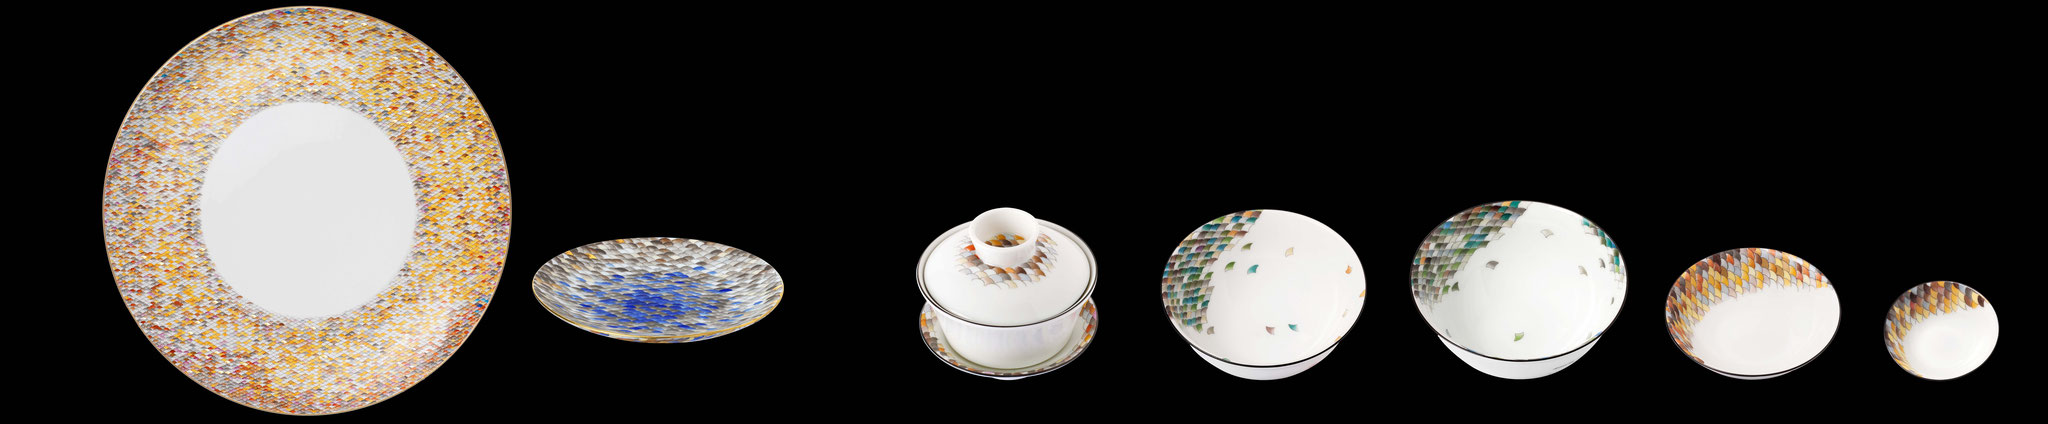 THEOPHILE BESSON - PORCELAINE - LE TALLEC, Paris – groupe TIFFANY & CO